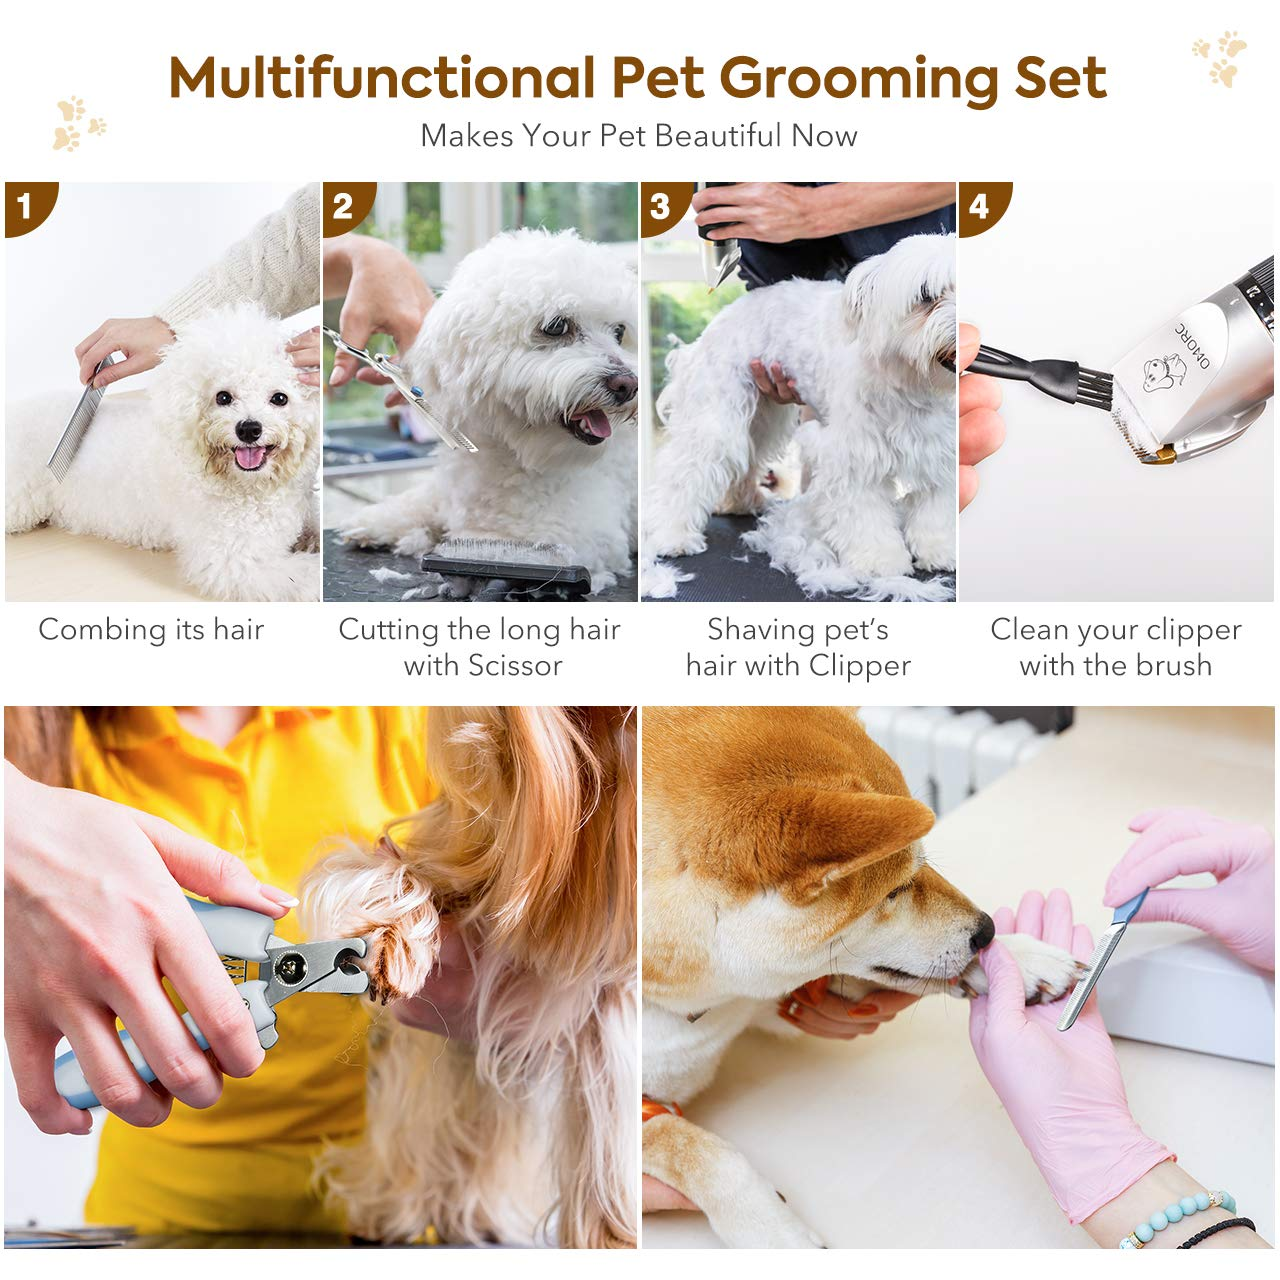 OMORC Dog Clippers Cordless Adjustable Pet Clippers Dog Hair Trimmer Rechargeable Cat Shaver Pet Grooming Professional Low Noise Dog Grooming kit with 8 Kinds Tools by OMORC (Image #7)